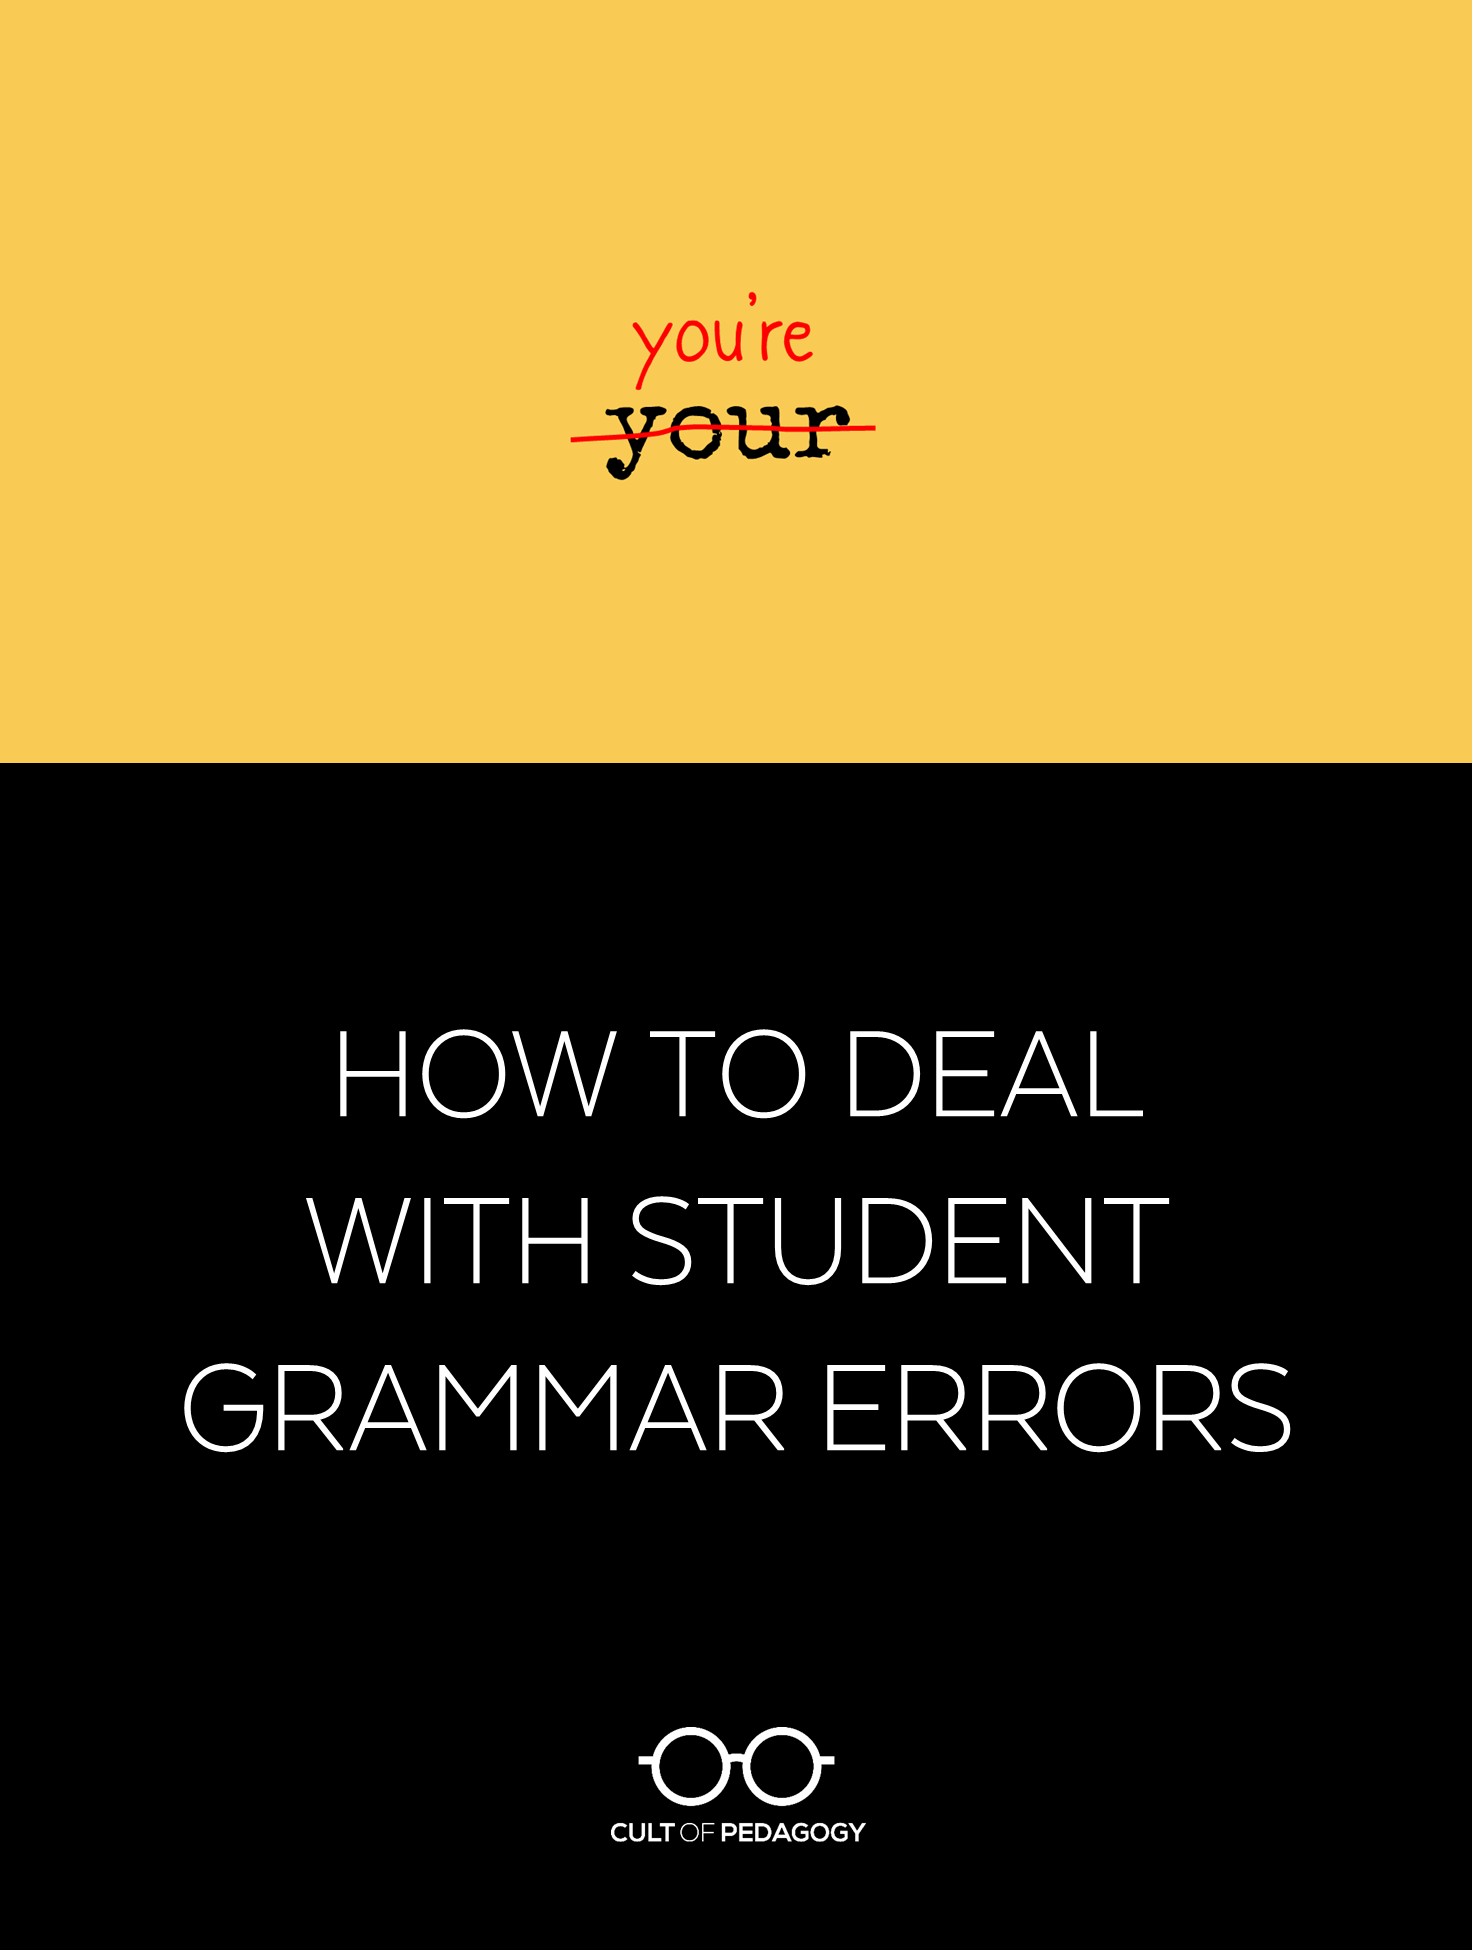 How To Deal With Student Grammar Errors